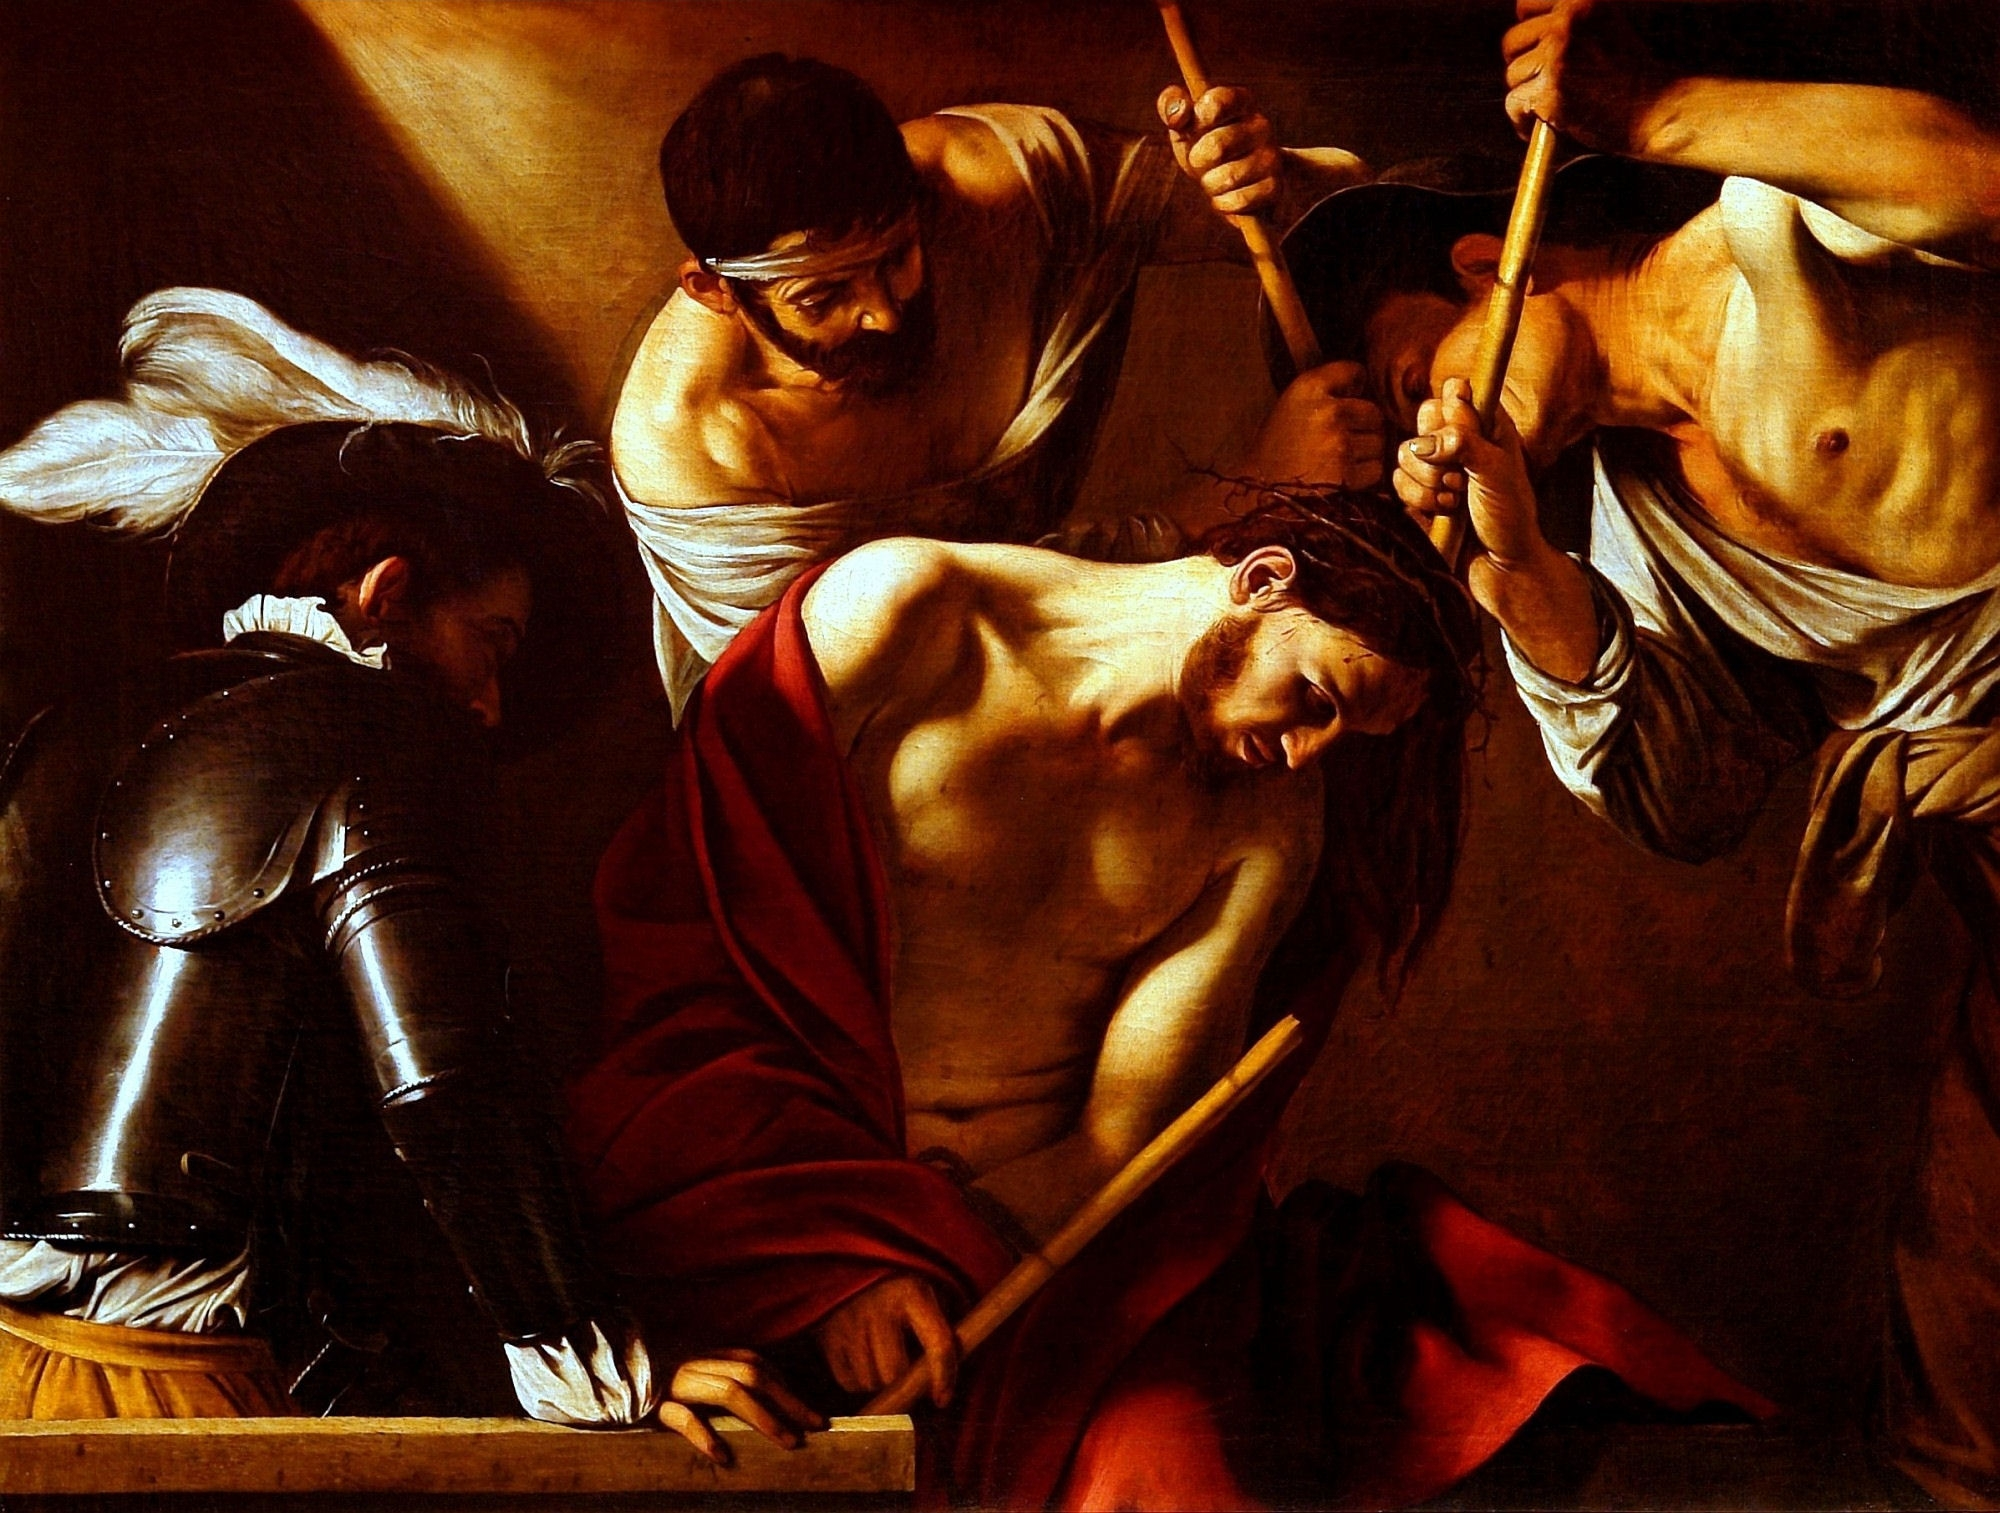 Michael Fried & Caravaggio